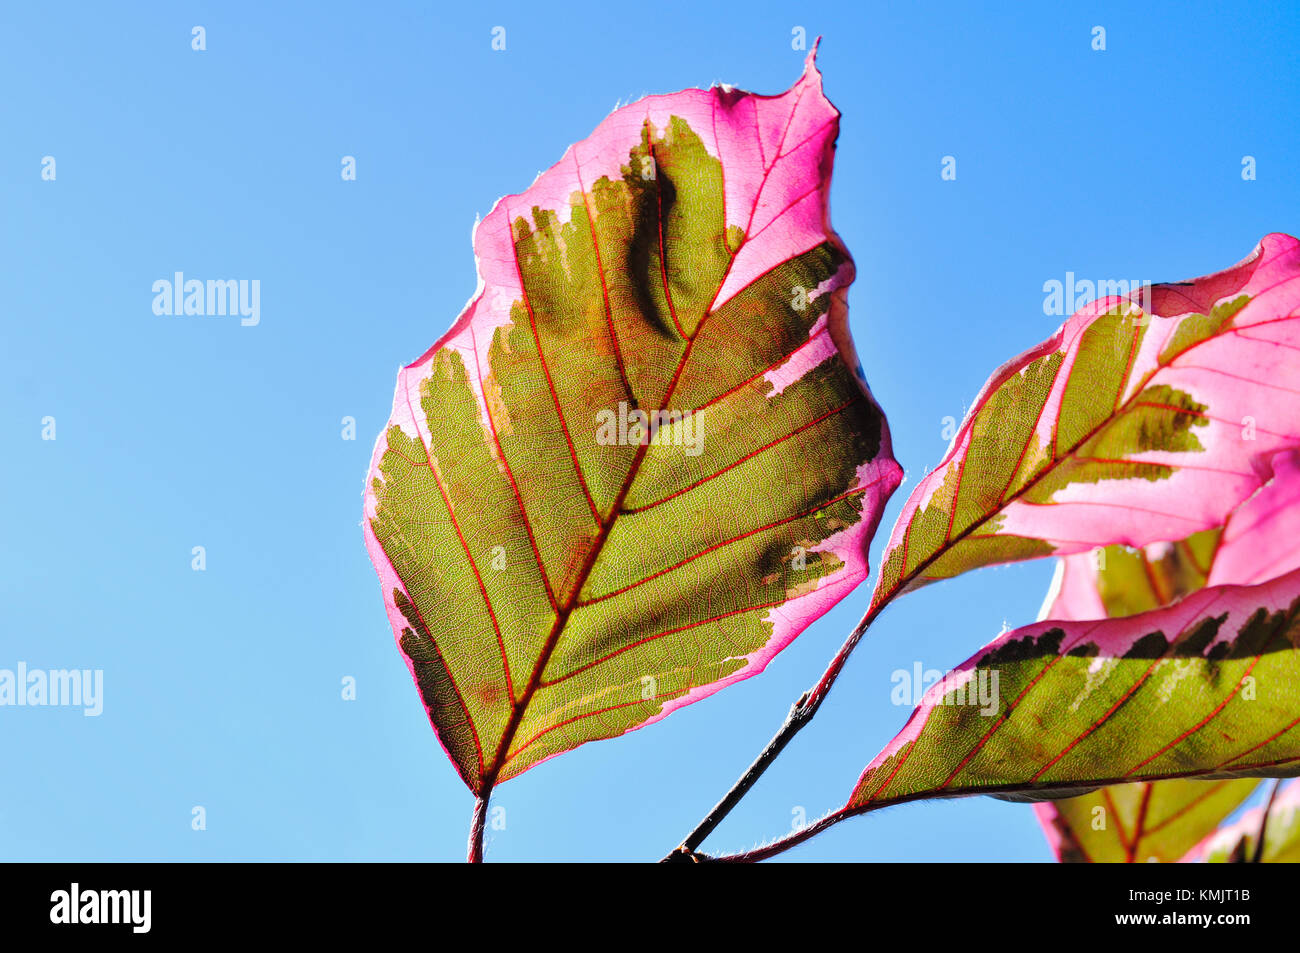 Tri Color Beech. Green and pink leaf pattern isolated against blue sky. - Stock Image